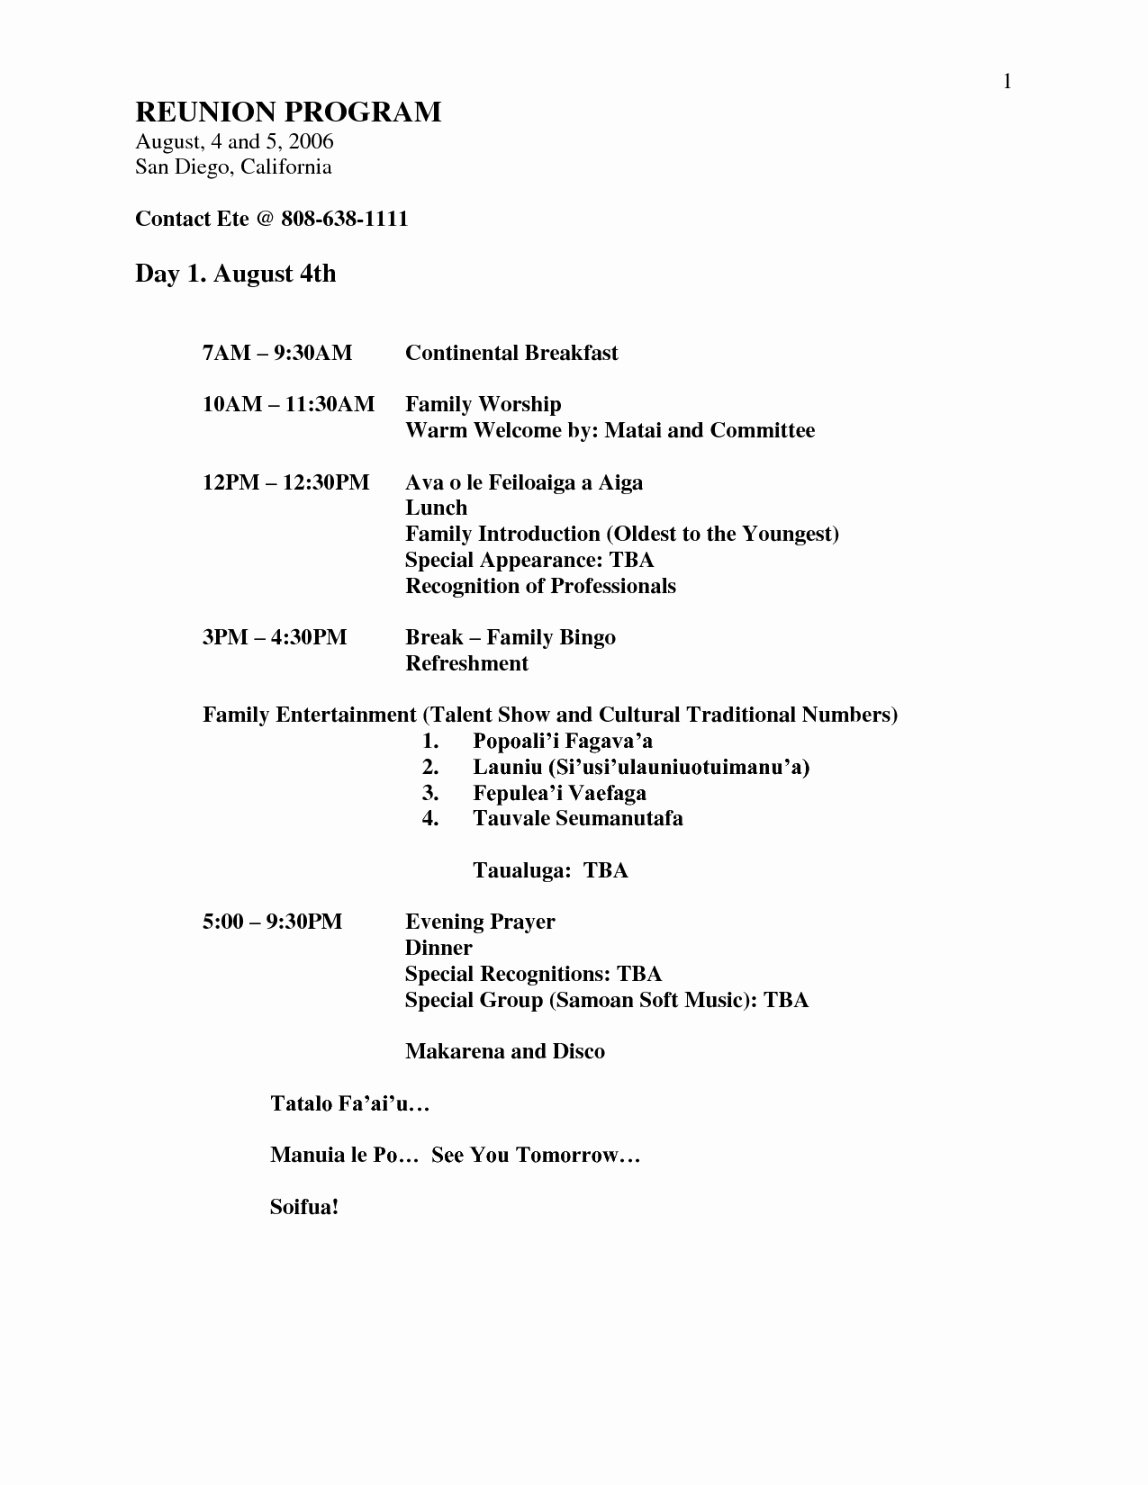 Family Reunion Agenda Template Best Of Free Family Reunion Ideas Class Reunion Program Template